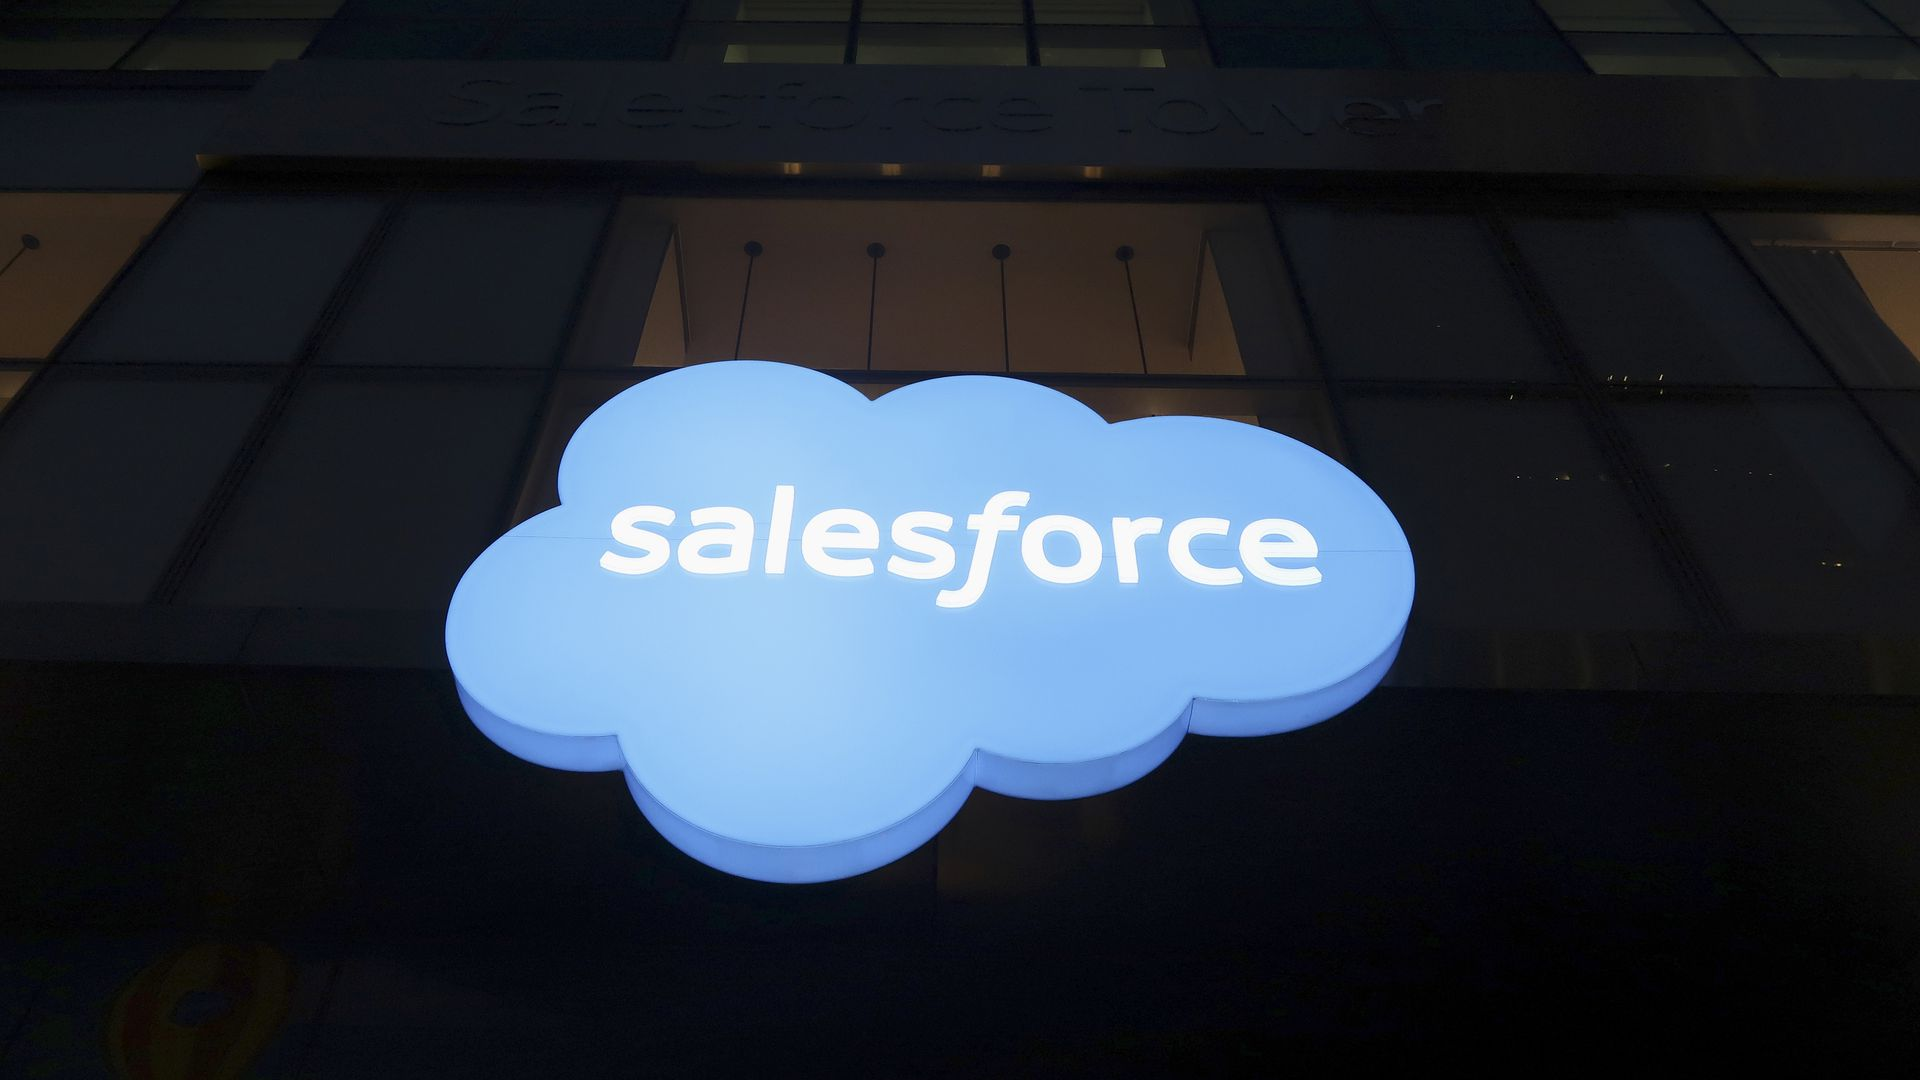 The word salesforce surrounded by the shape of a cloud.